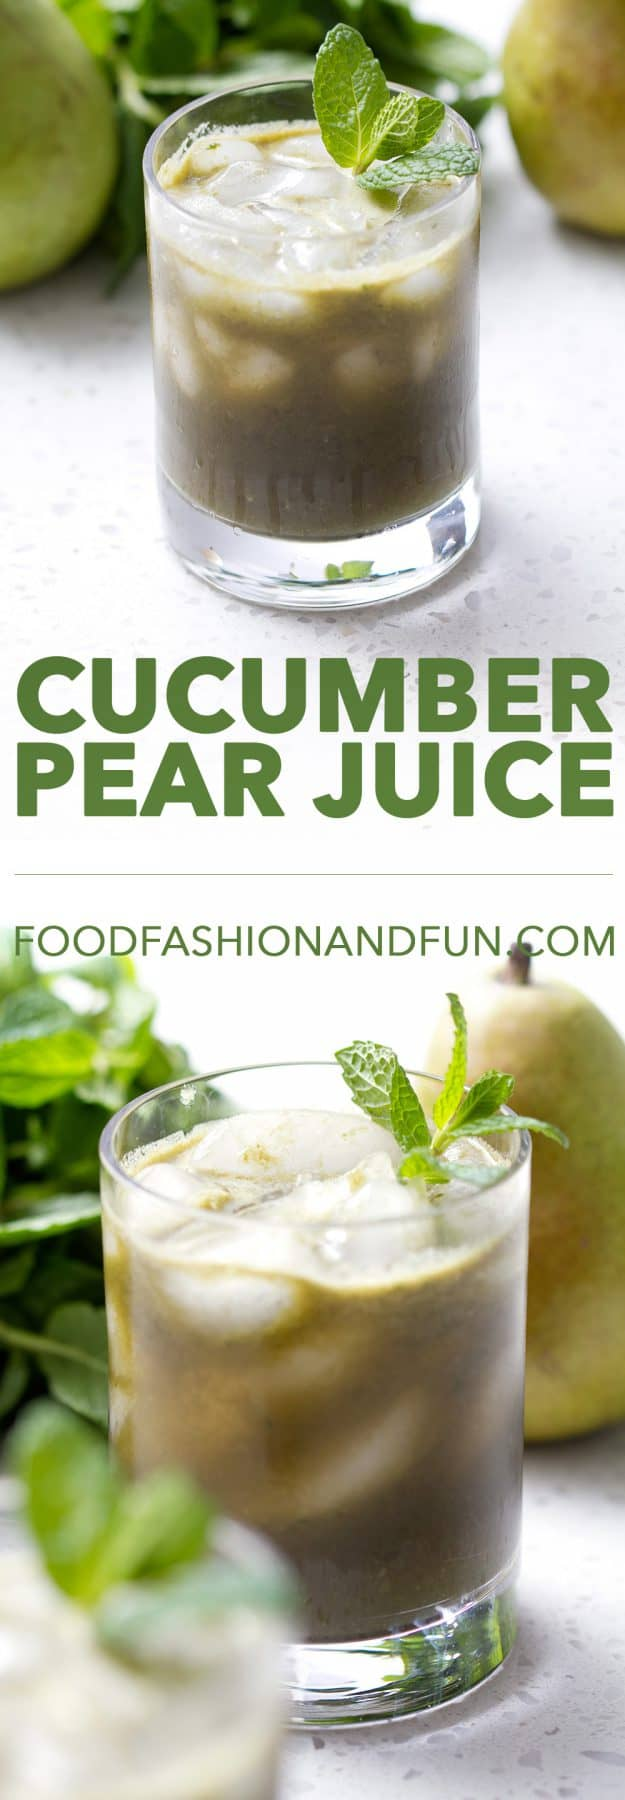 A refreshing combination of vegetable and fruit juice that is healthy and delicious. This recipe is allergy friendly (gluten, dairy, shellfish, nut, egg, and soy free) and suits the autoimmune protocol and vegan diets.